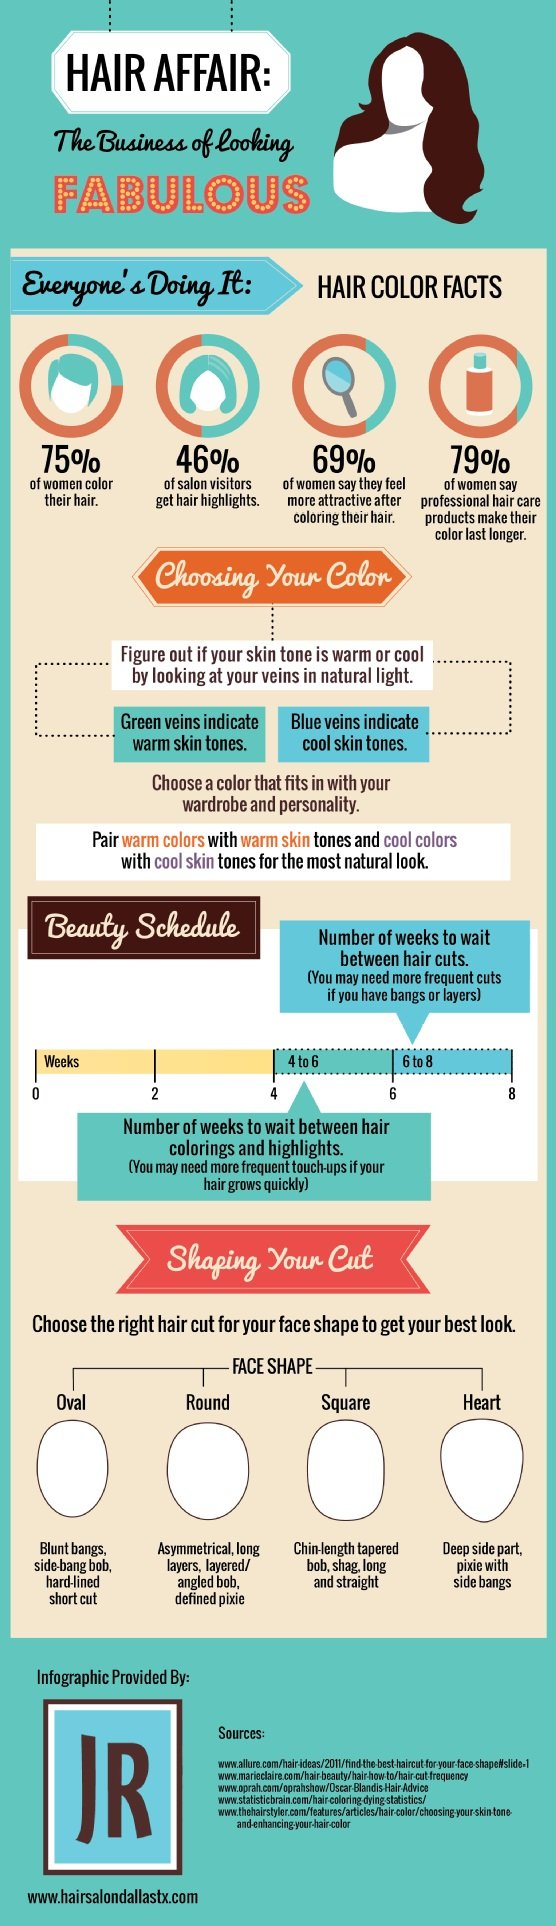 HairAffair: The Business of Looking Fabulous #infographic